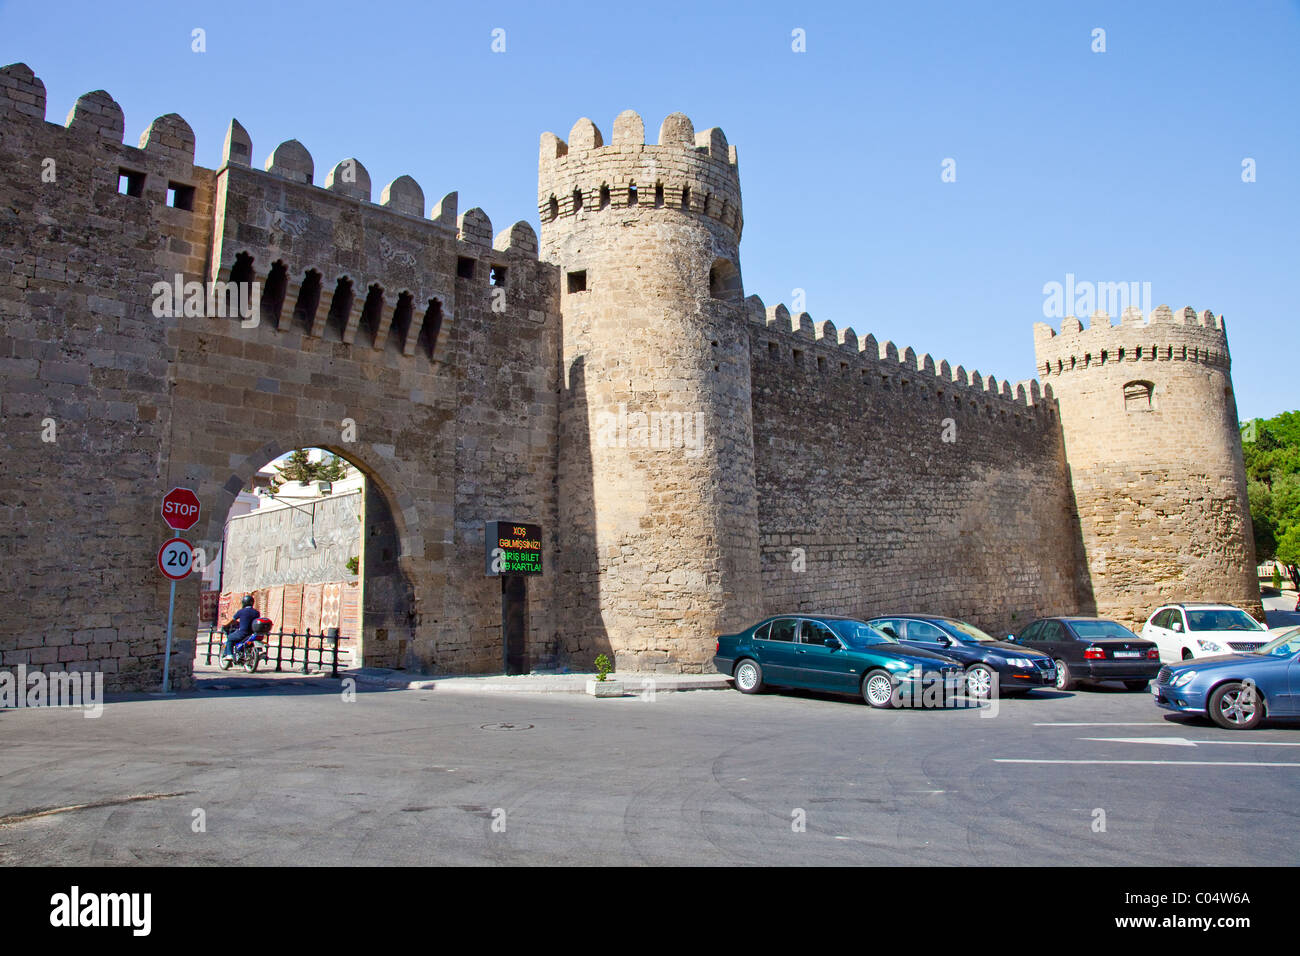 Gate in the Old city walls, Baku, Azerbaijan - Stock Image